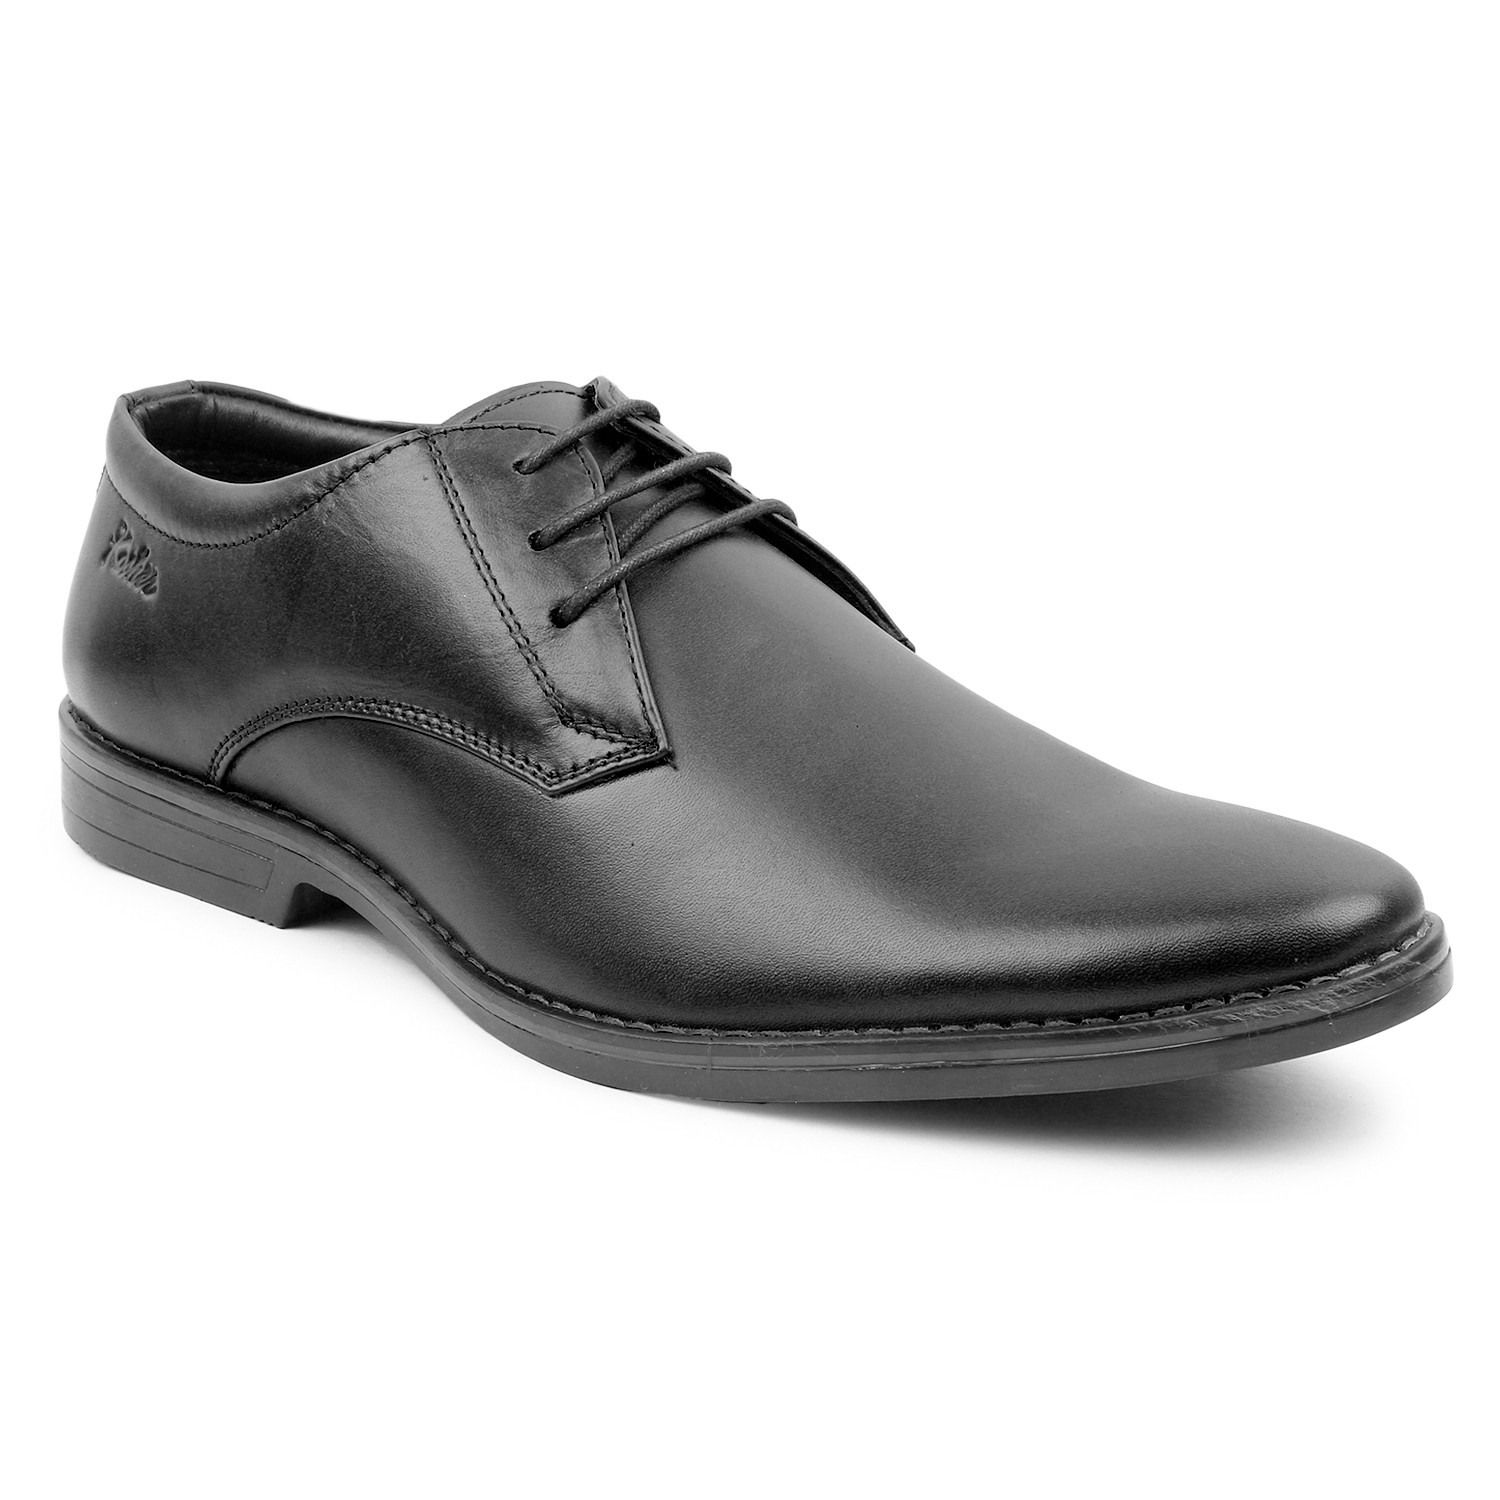 Leather Shoes Black